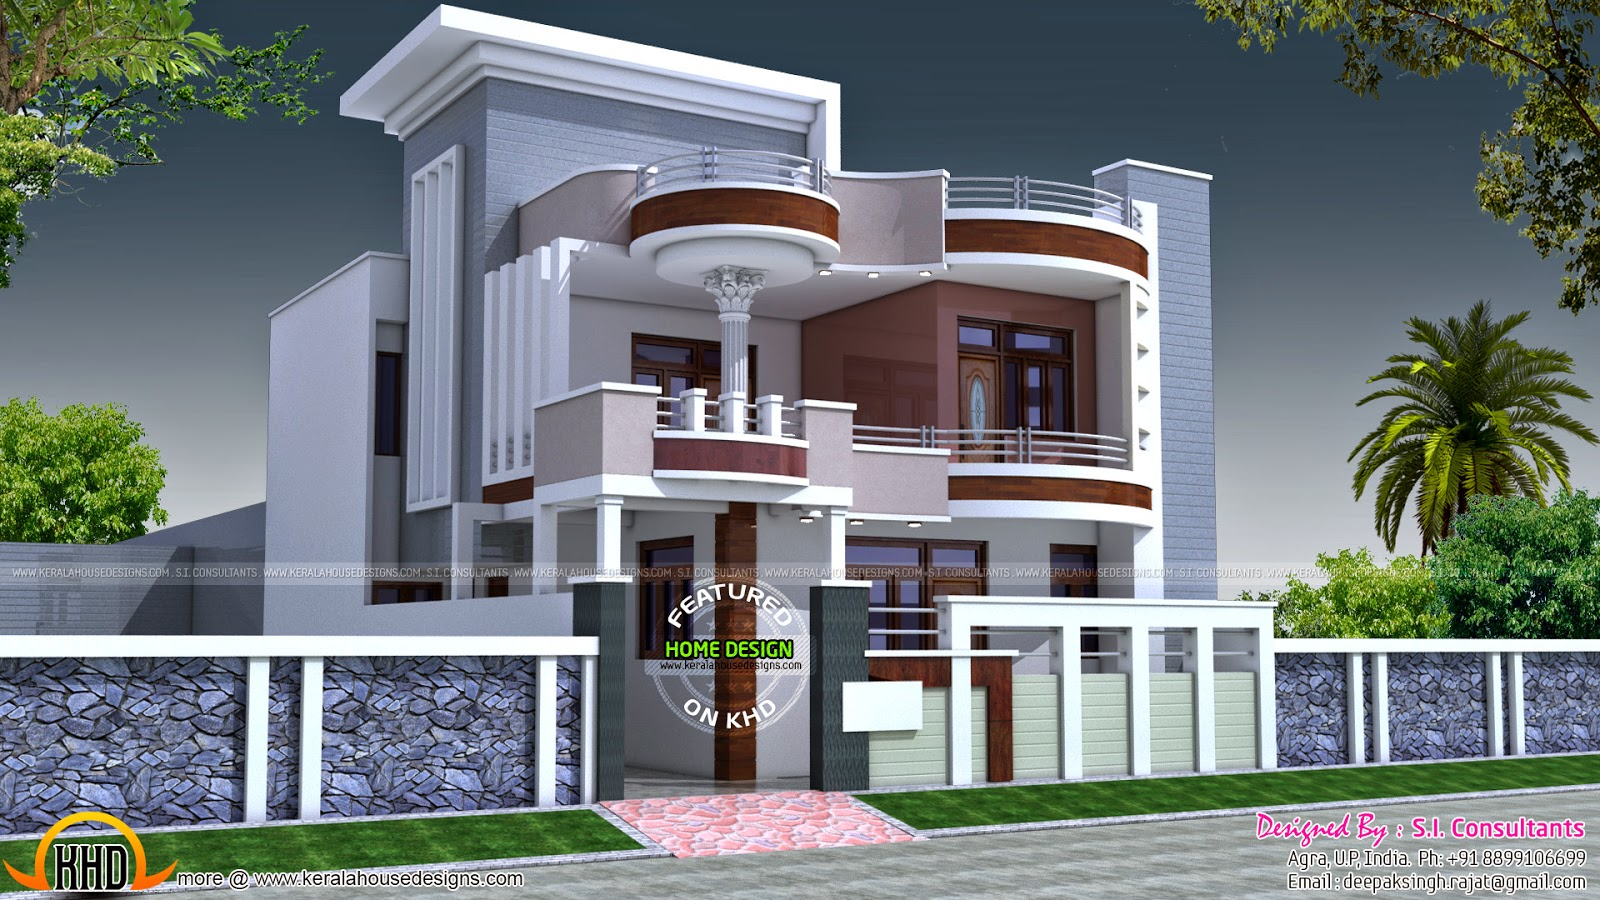 2875 square feet flat roof home keralahousedesigns Indian home design